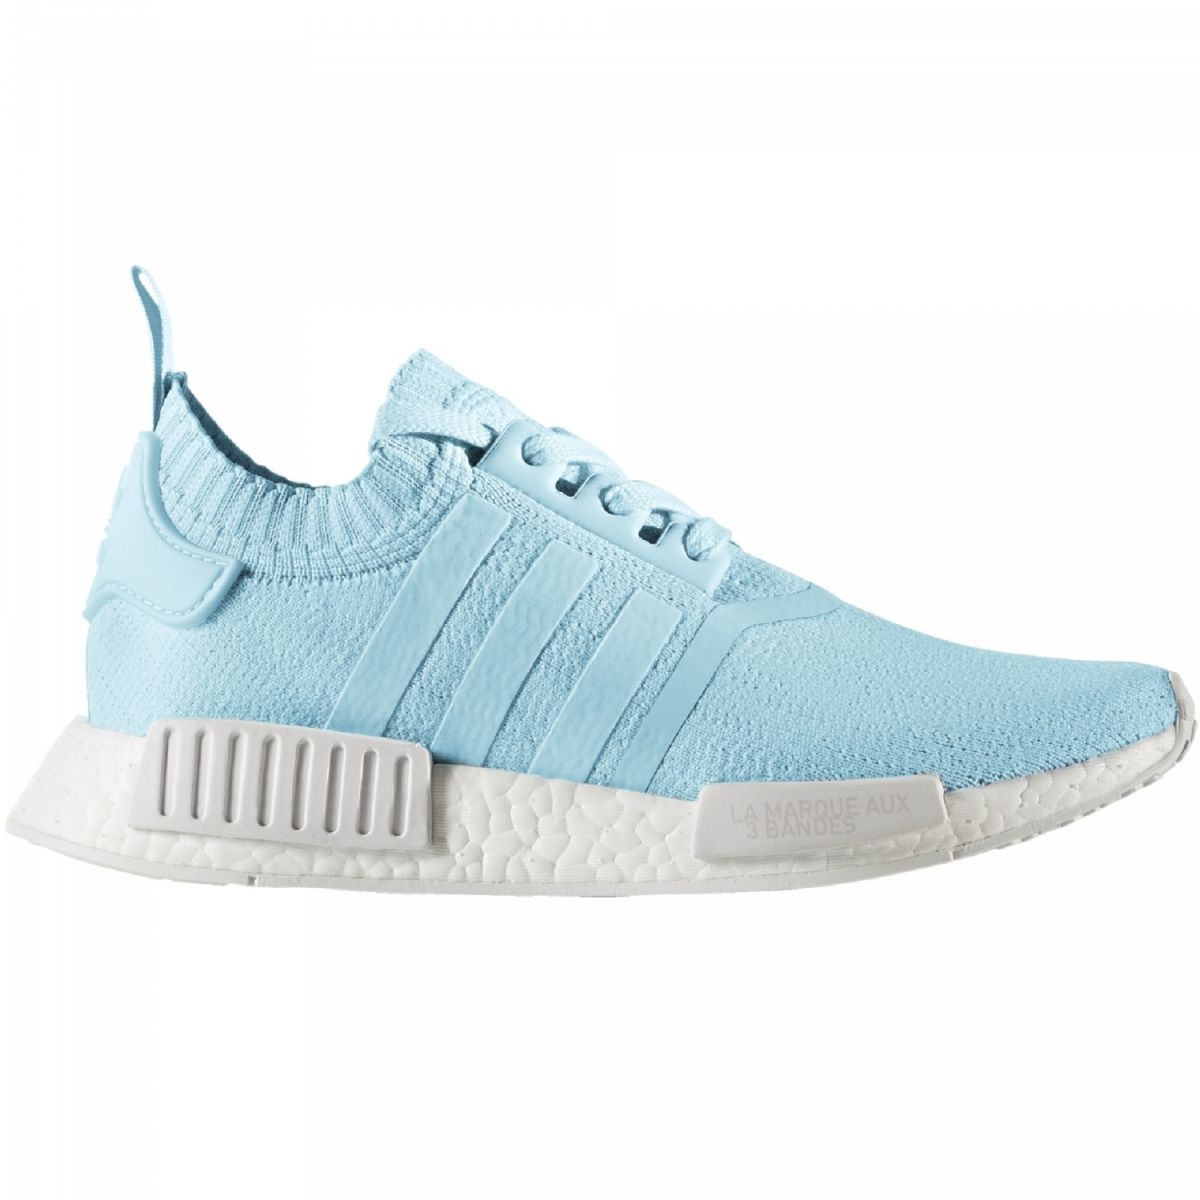 adidas originals nmd r1 pk sneaker damen schuhe blau wei by8763 sport klingenmaier. Black Bedroom Furniture Sets. Home Design Ideas